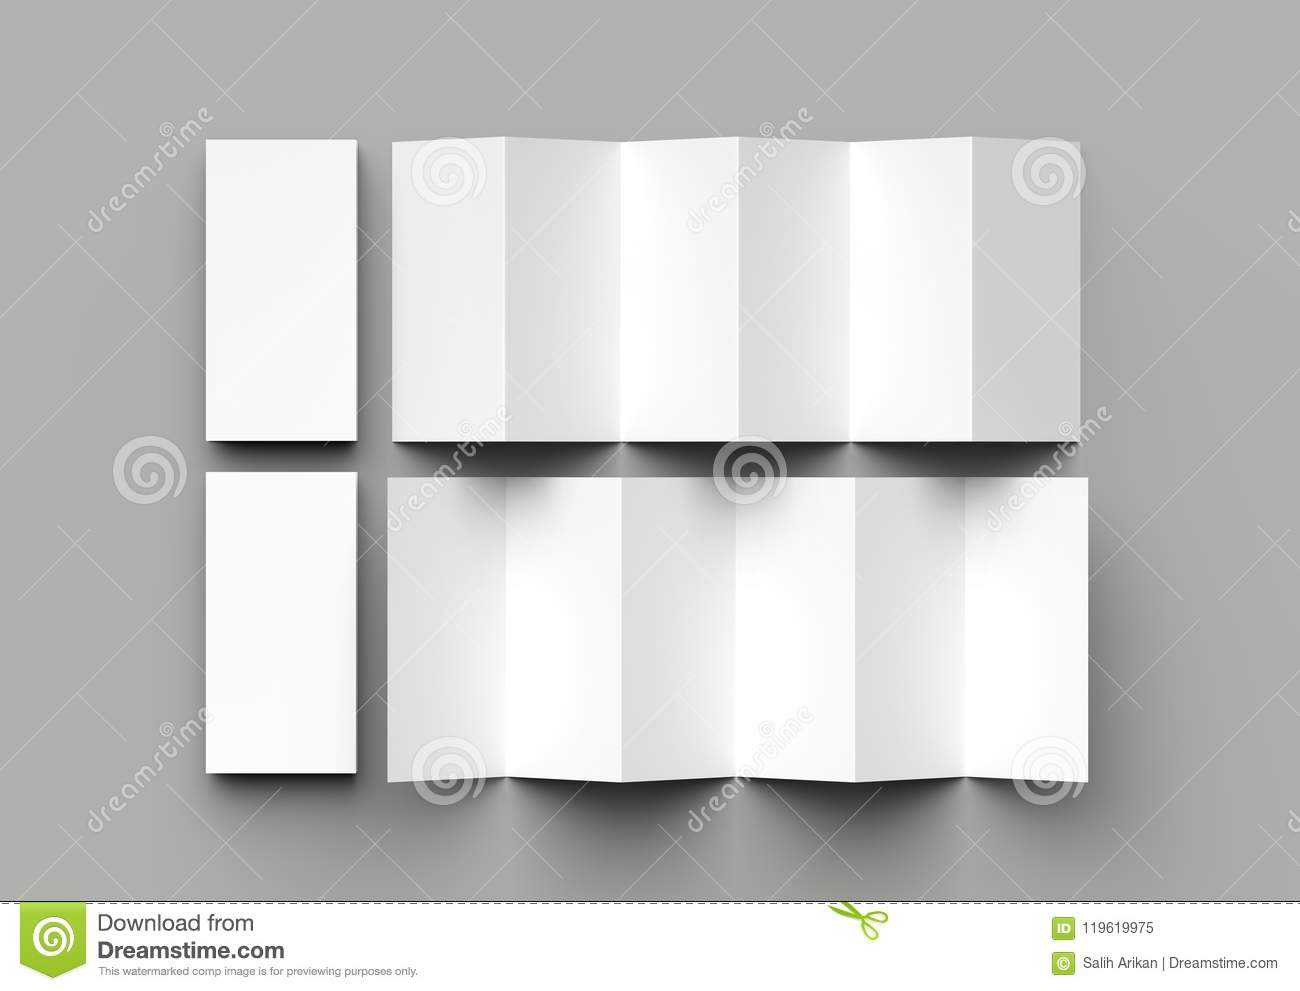 12 Page Leaflet, 6 Panel Accordion Fold - Z Fold Vertical In 12 Page Brochure Template